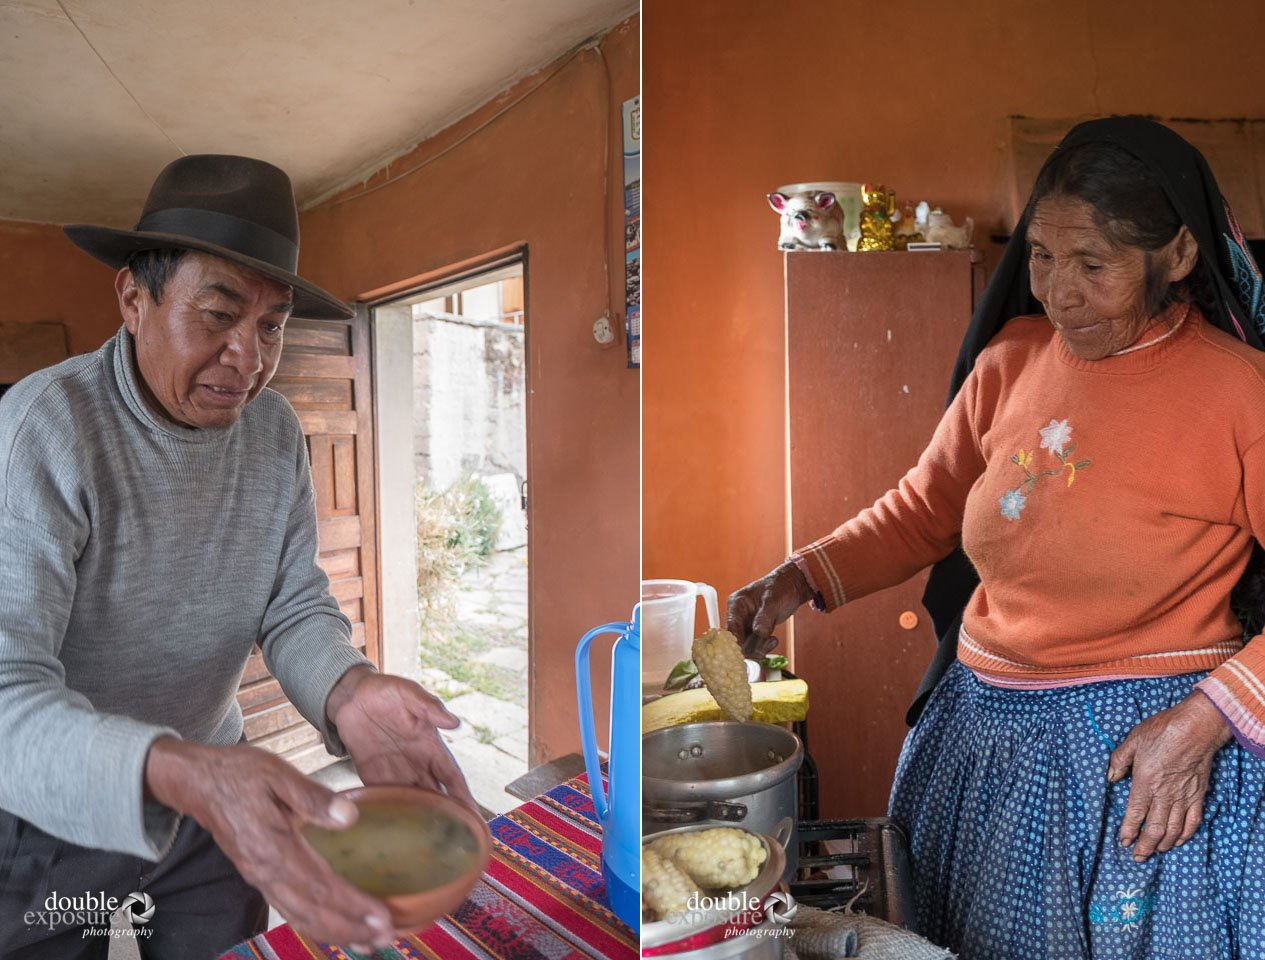 An elderly couple prepare a meal for their guests.